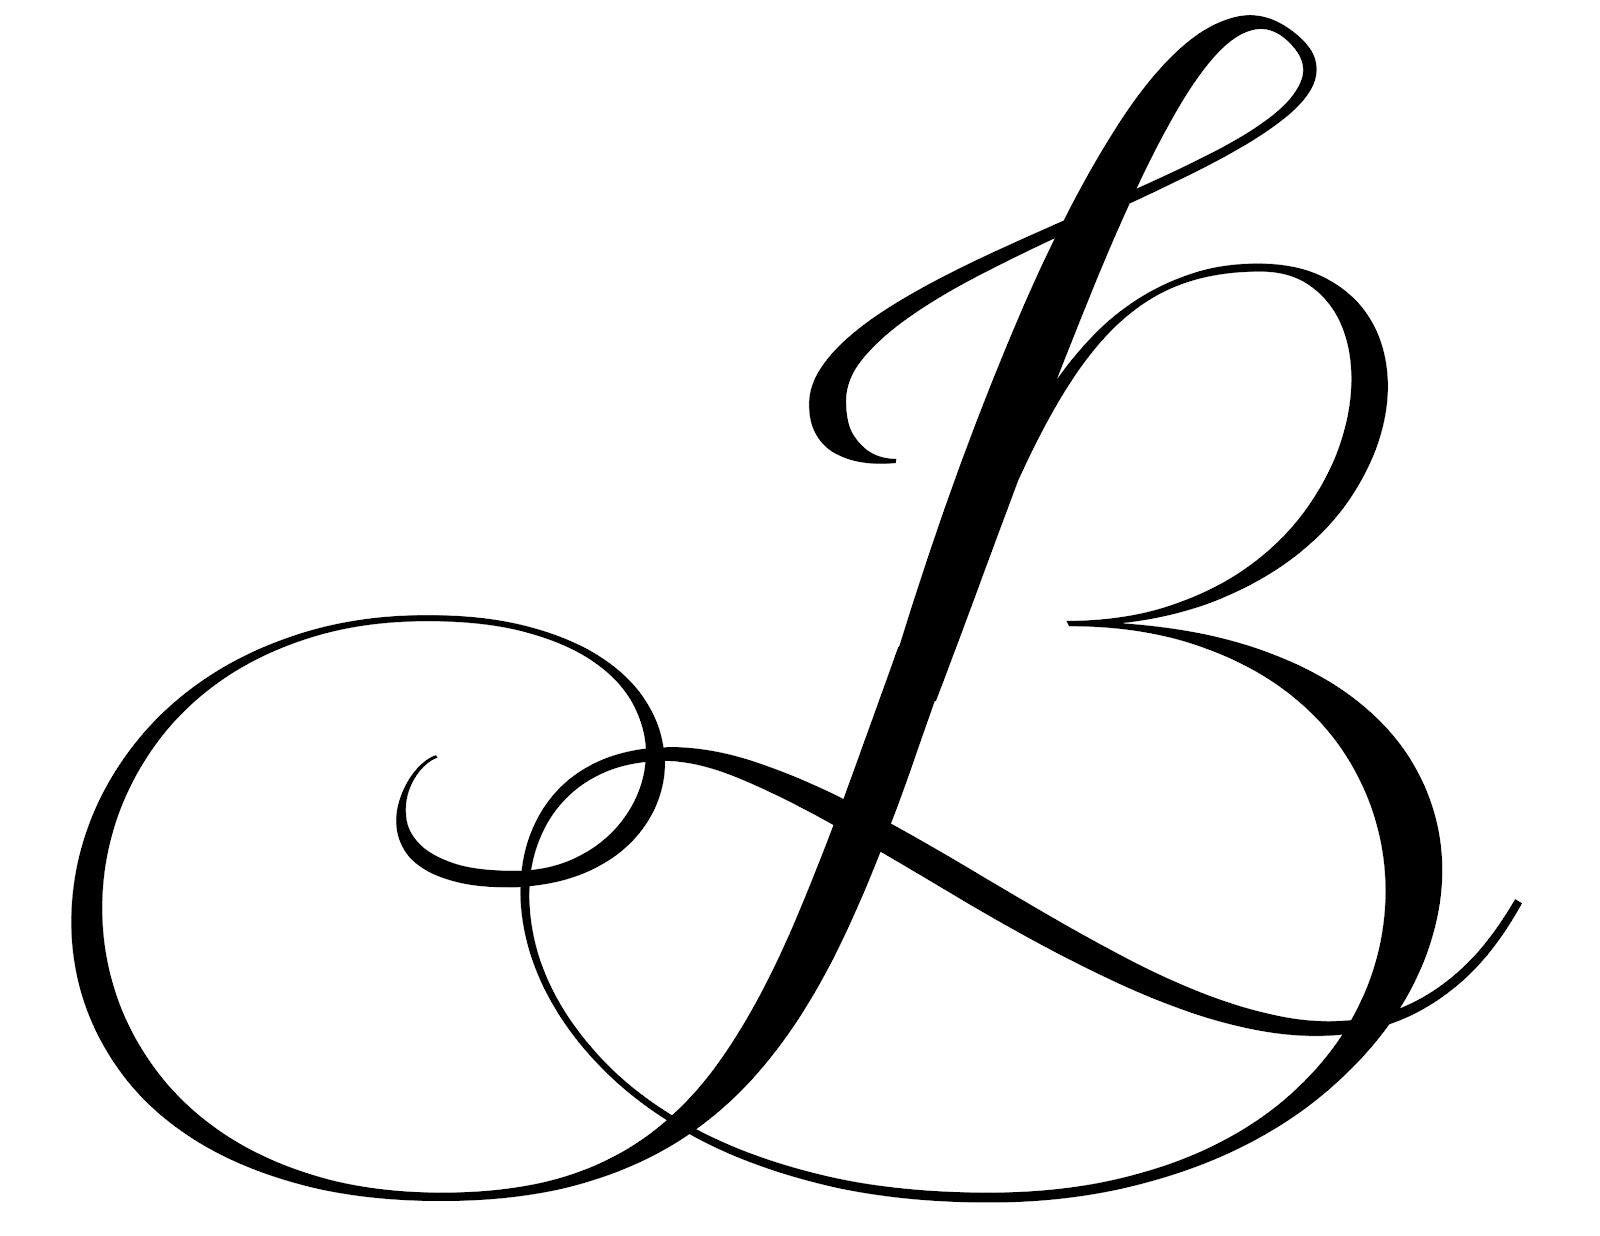 letter b designs gallery the elements of wedding design something borrowed